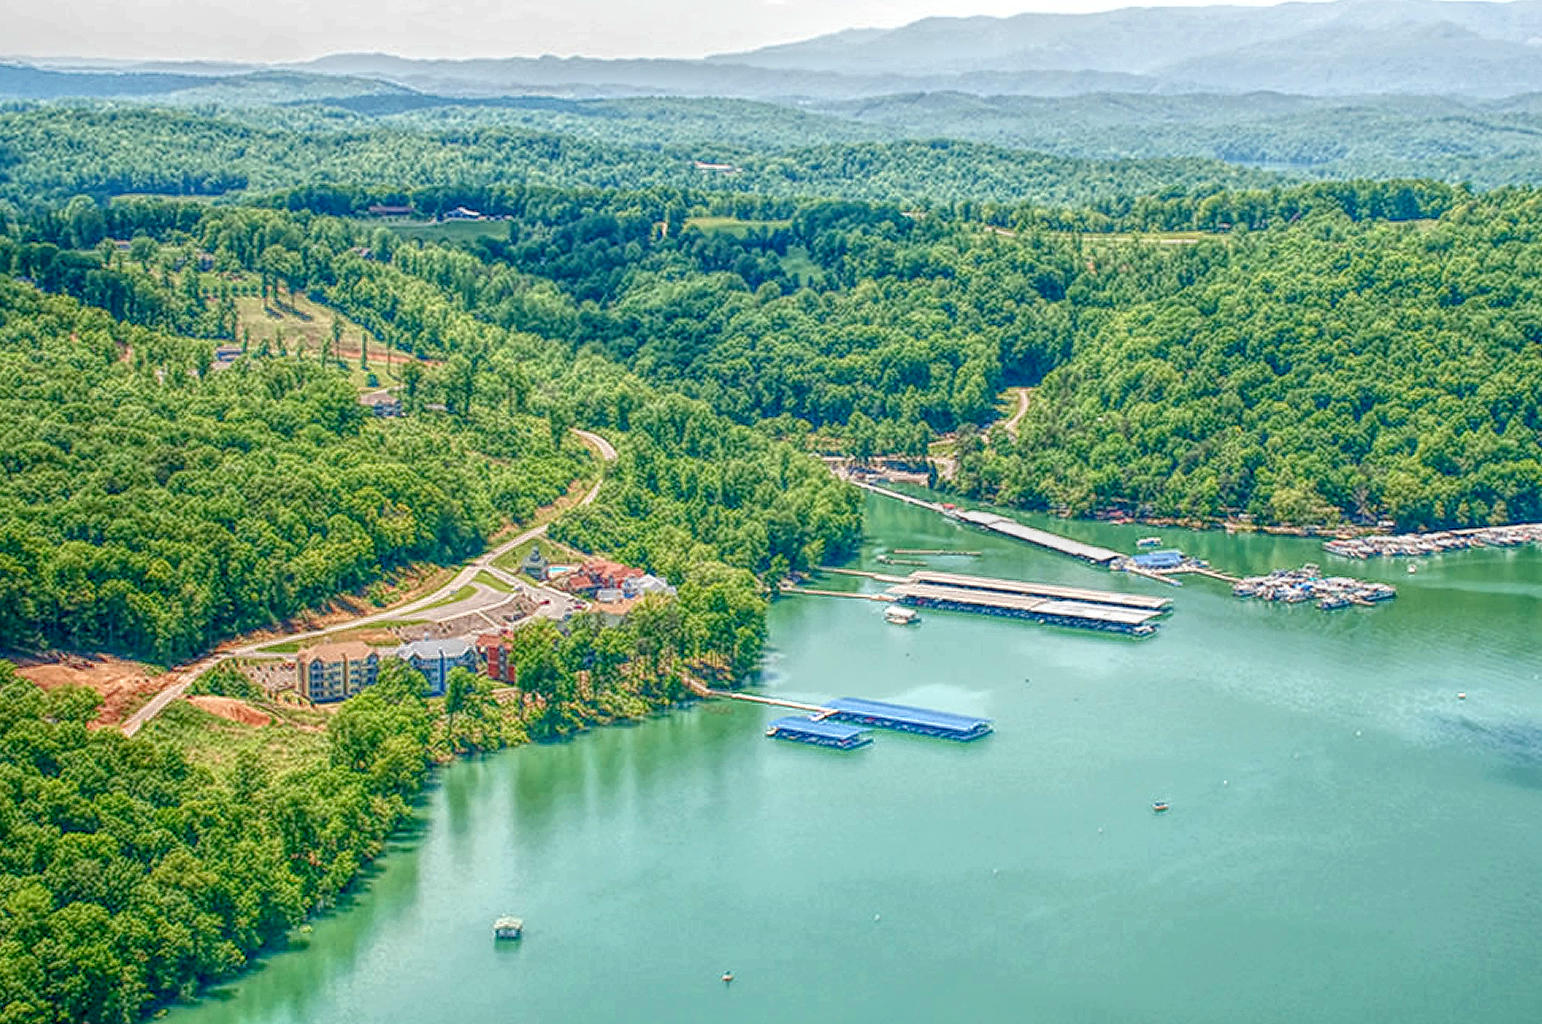 Aerial view of Yacht Club Condos in Andersonville, TN on Norris Lake